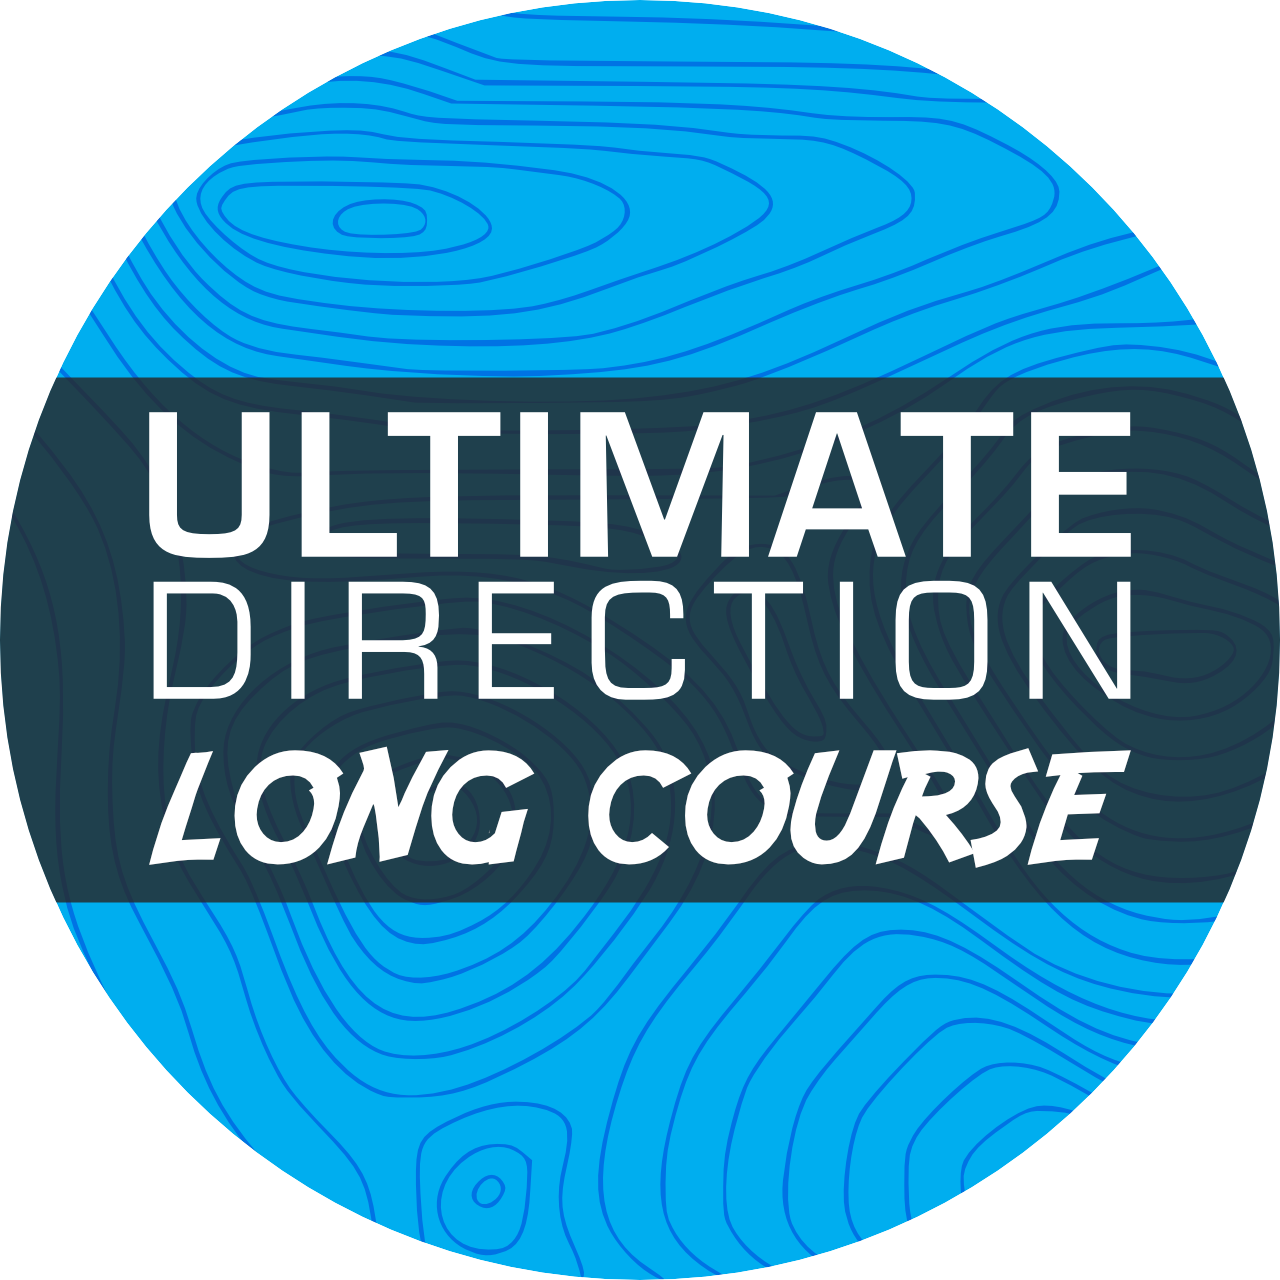 2018-Ultimate-Direction-Long-Course.png